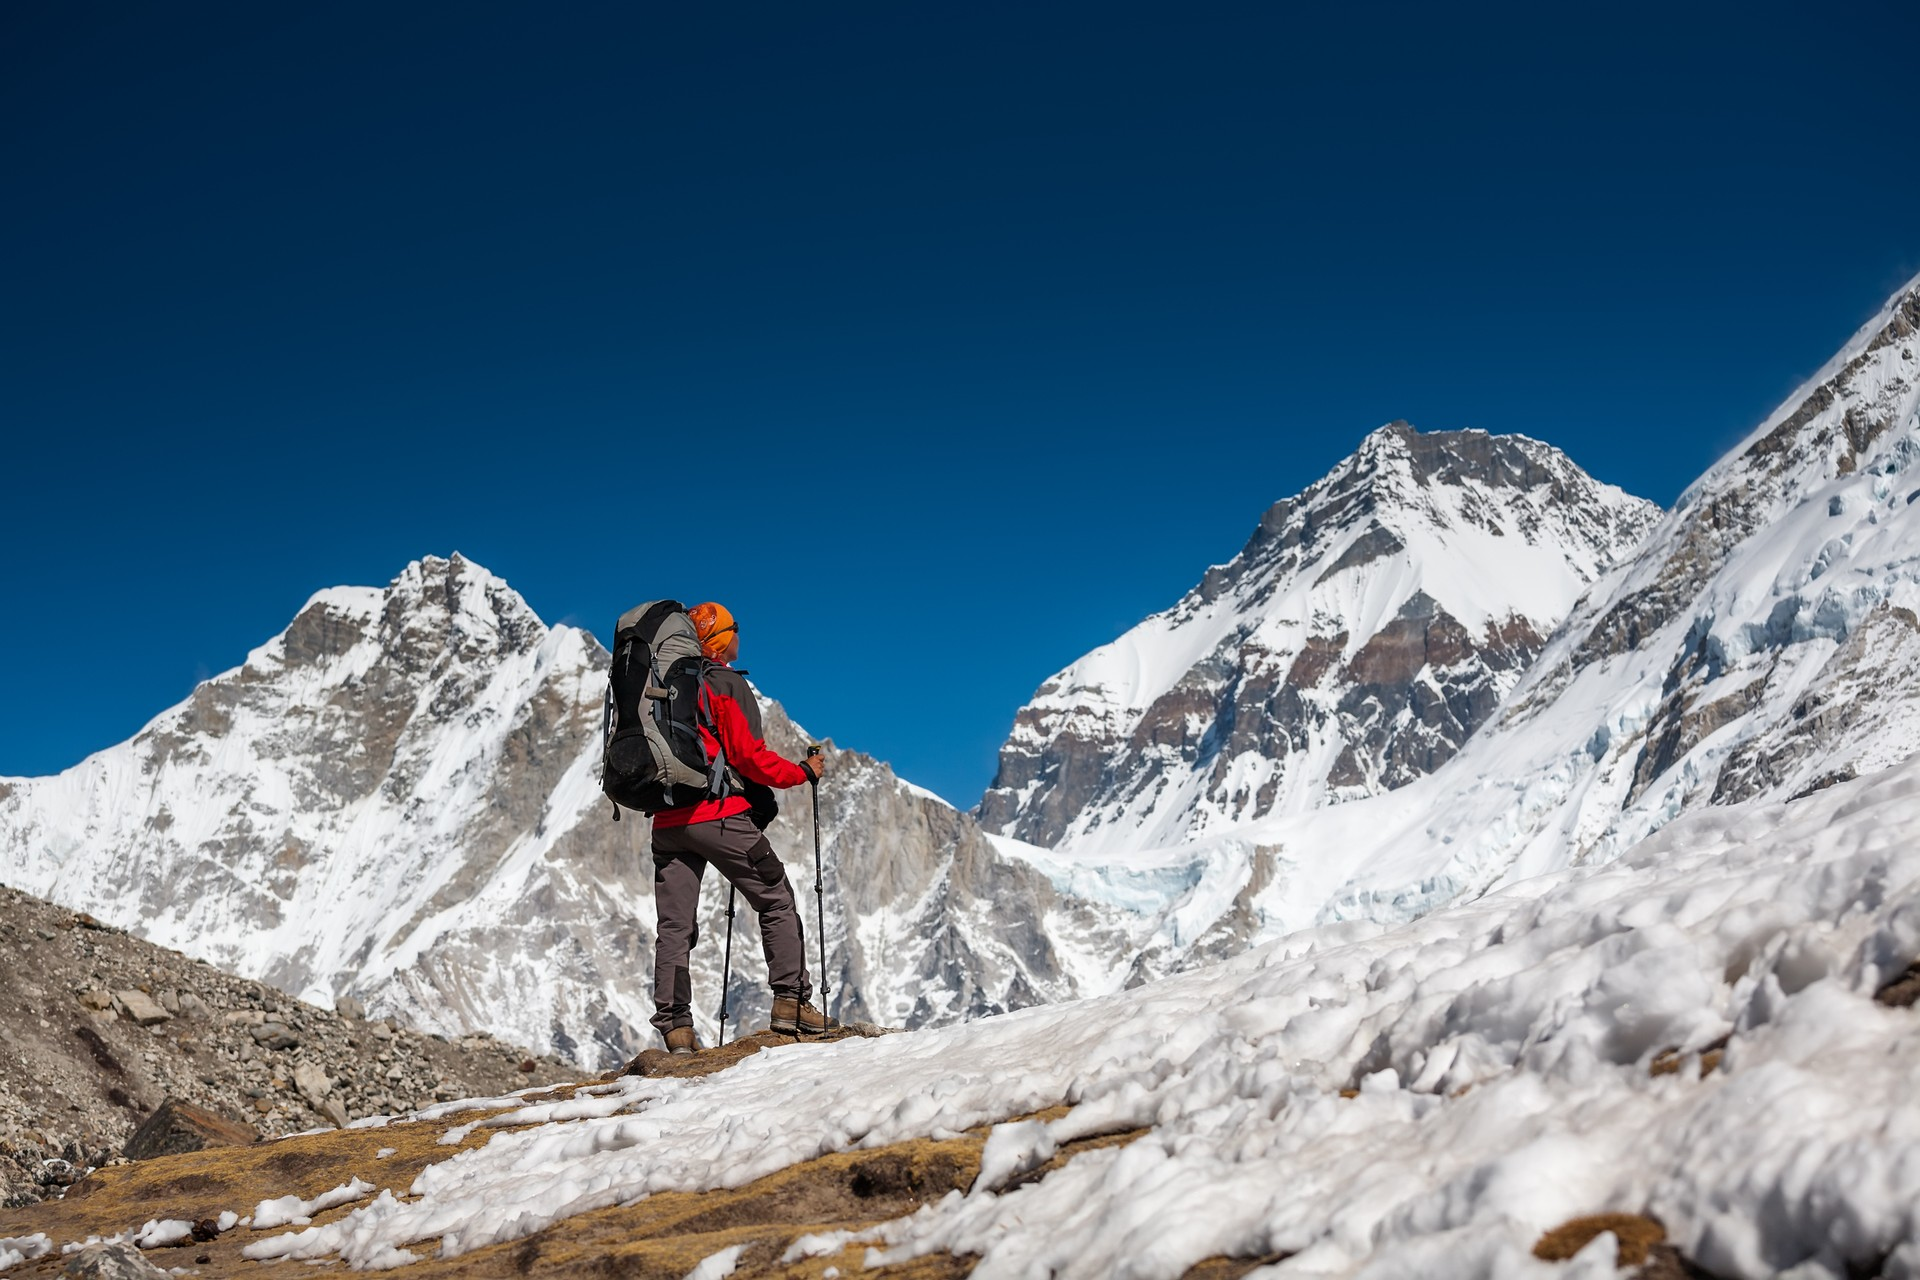 A hiker heading up to Everest Base Camp in Nepal